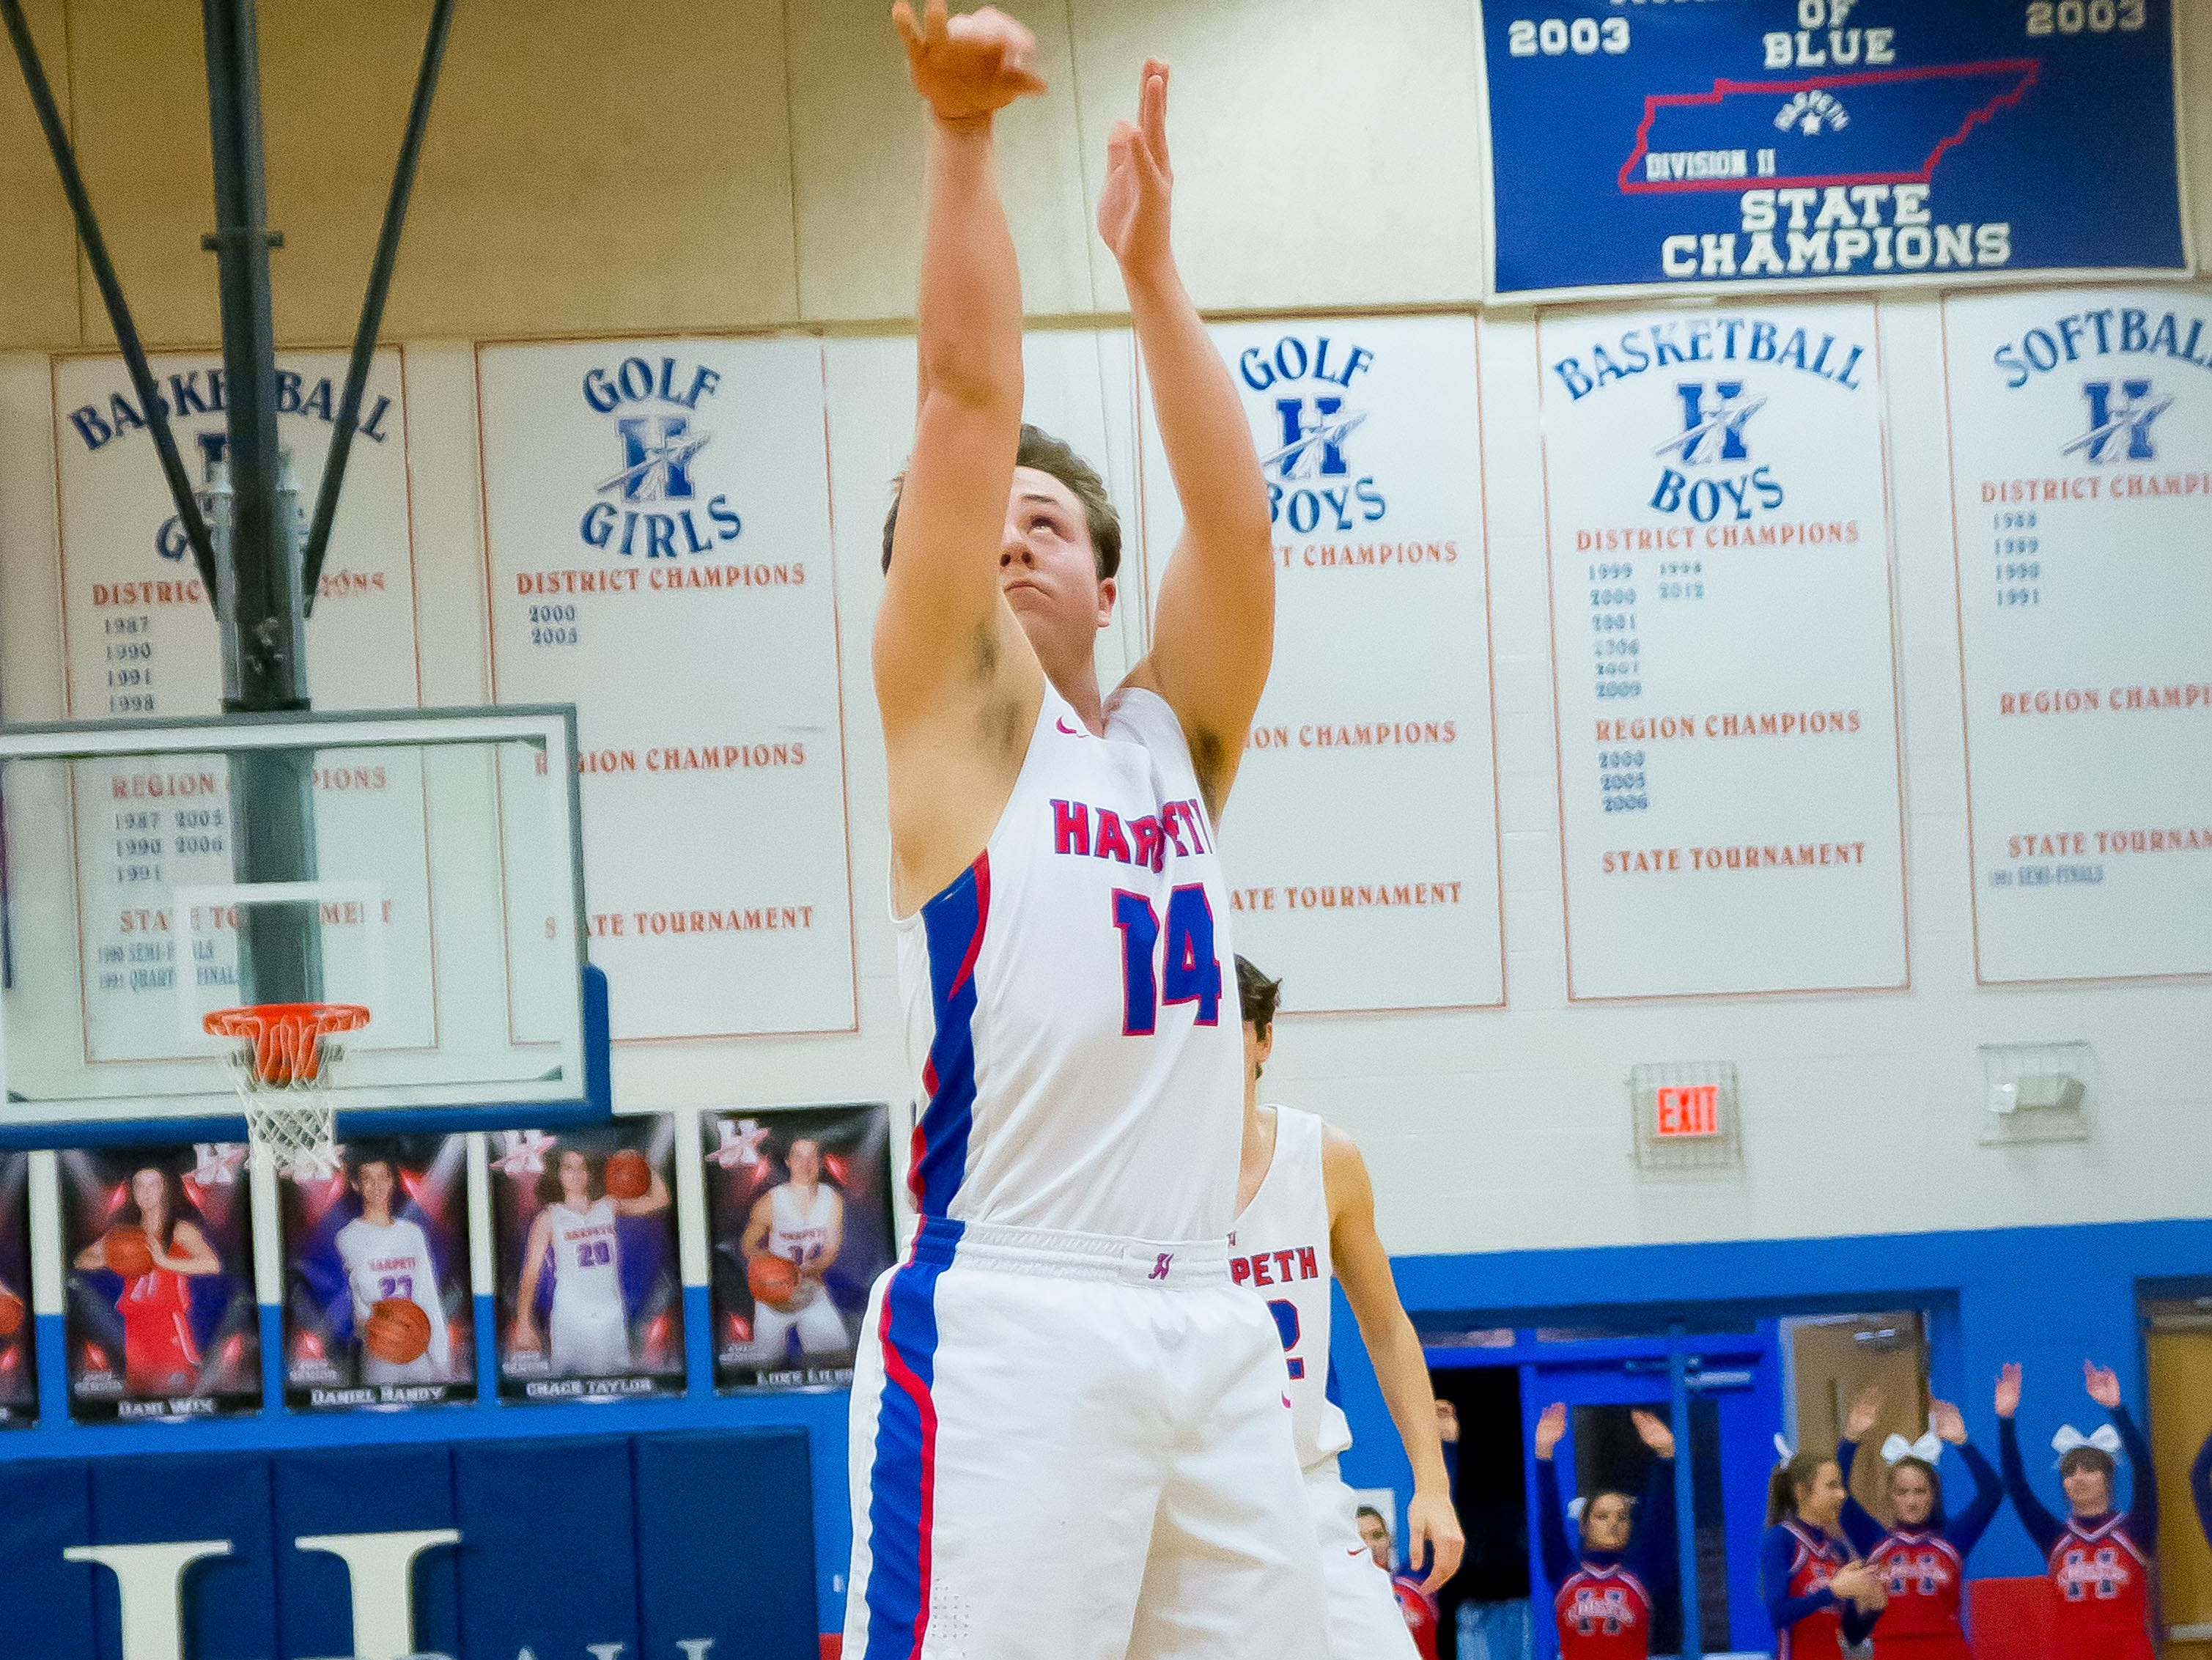 #14 Blake Provo at the line for Harpeth